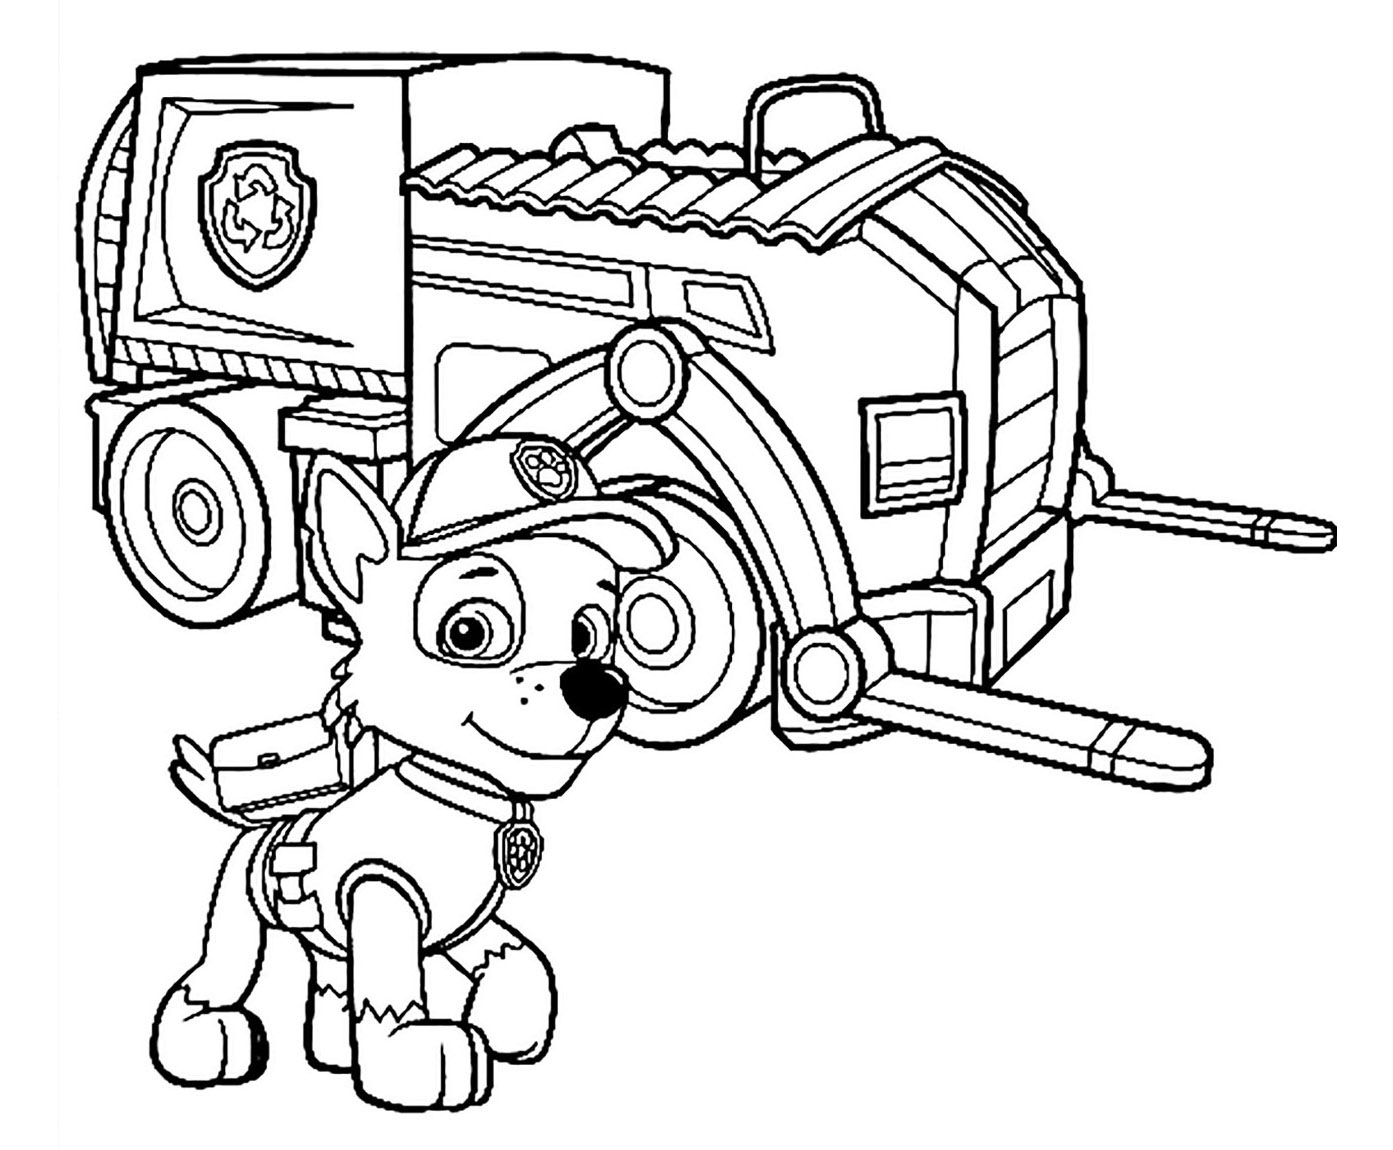 Paw Patrol To Print For Free Paw Patrol Kids Coloring Pages